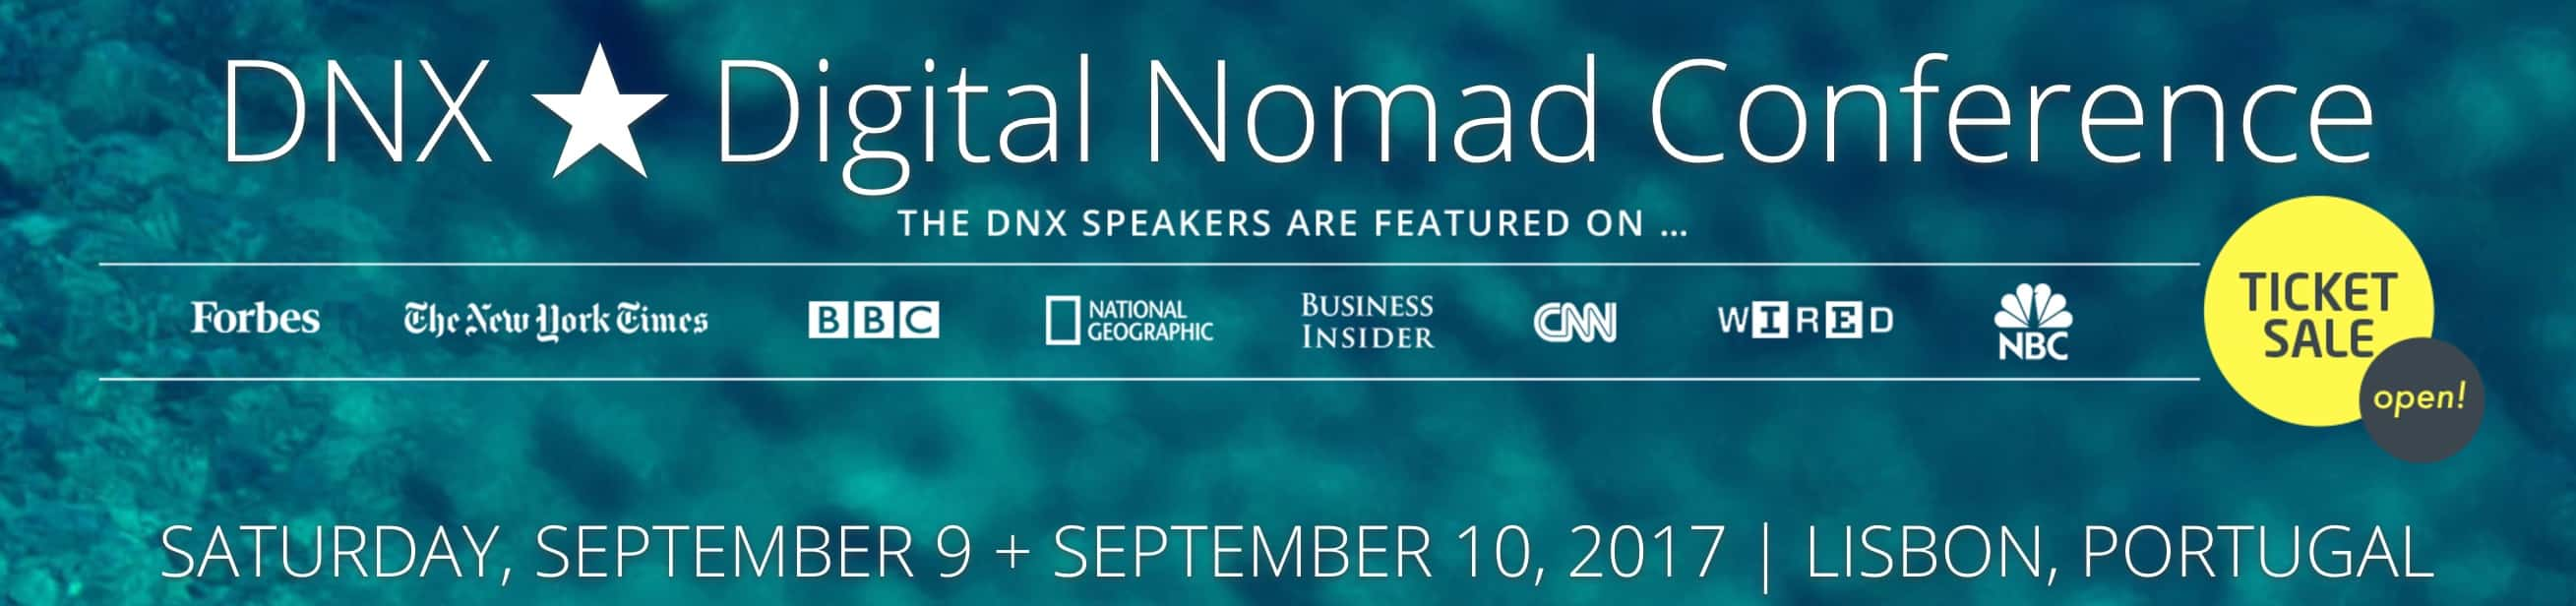 Digital Nomad Conference